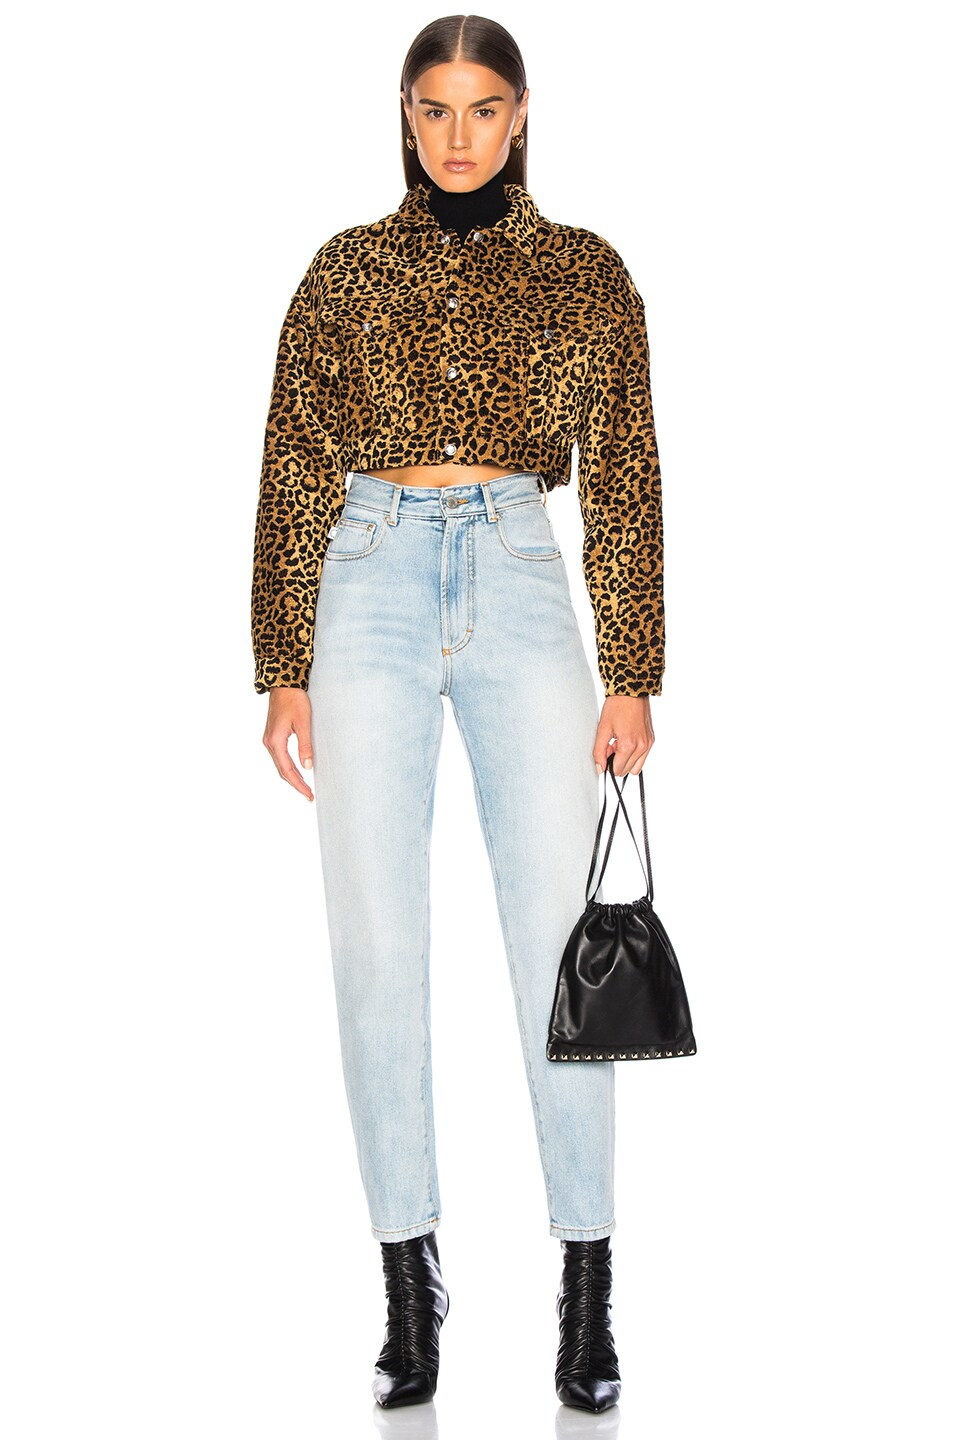 5b433babe86d Image 5 of RE/DONE ORIGINALS Leopard Cropped Jacket in Leopard